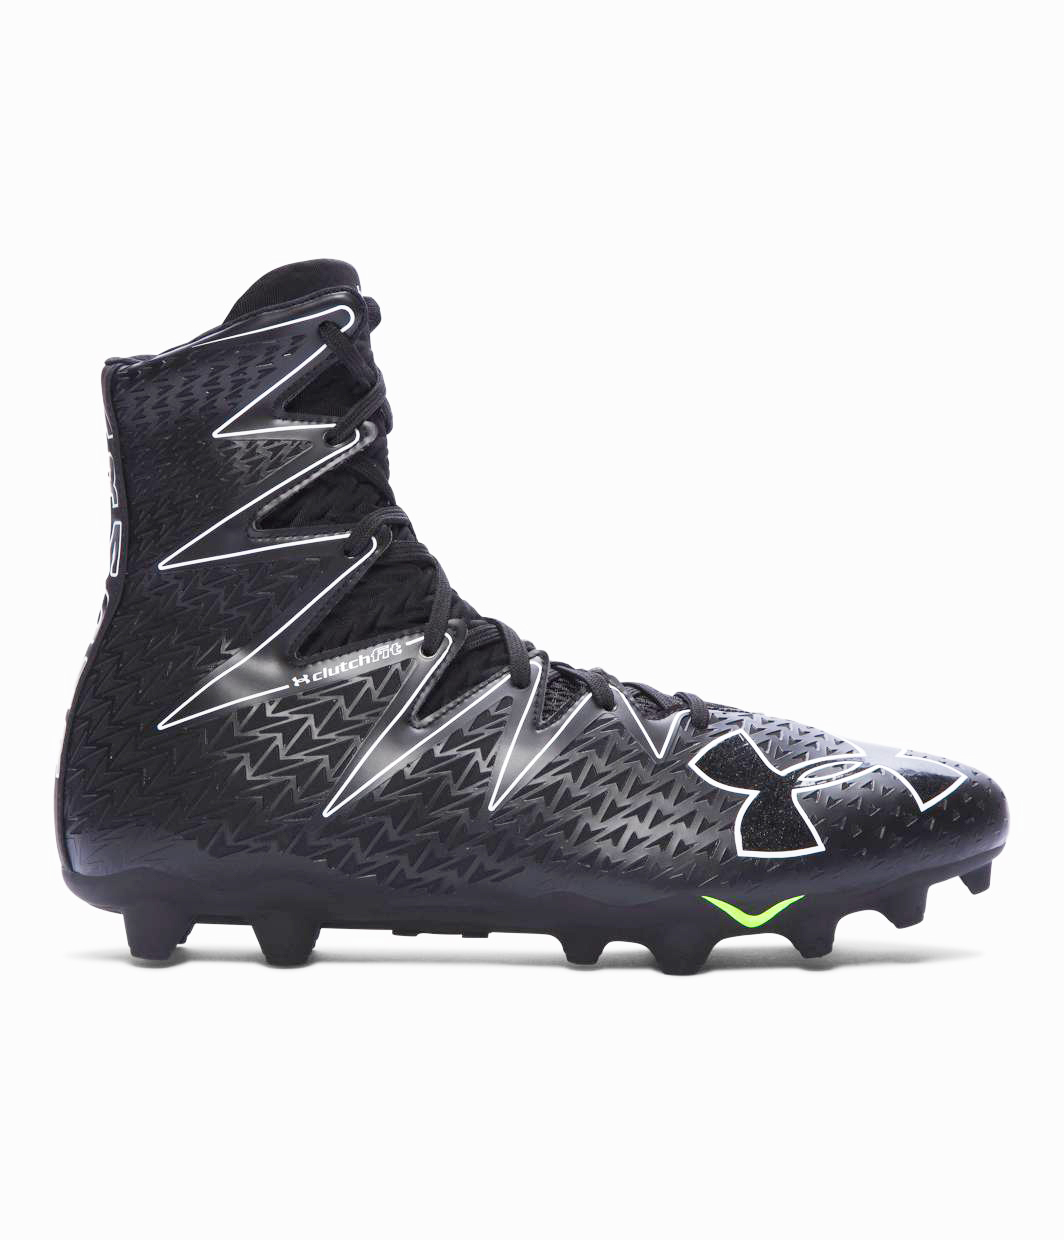 New Mens Under Armour Highlight MC Football Cleats 1269693-001 Size 10 M Black